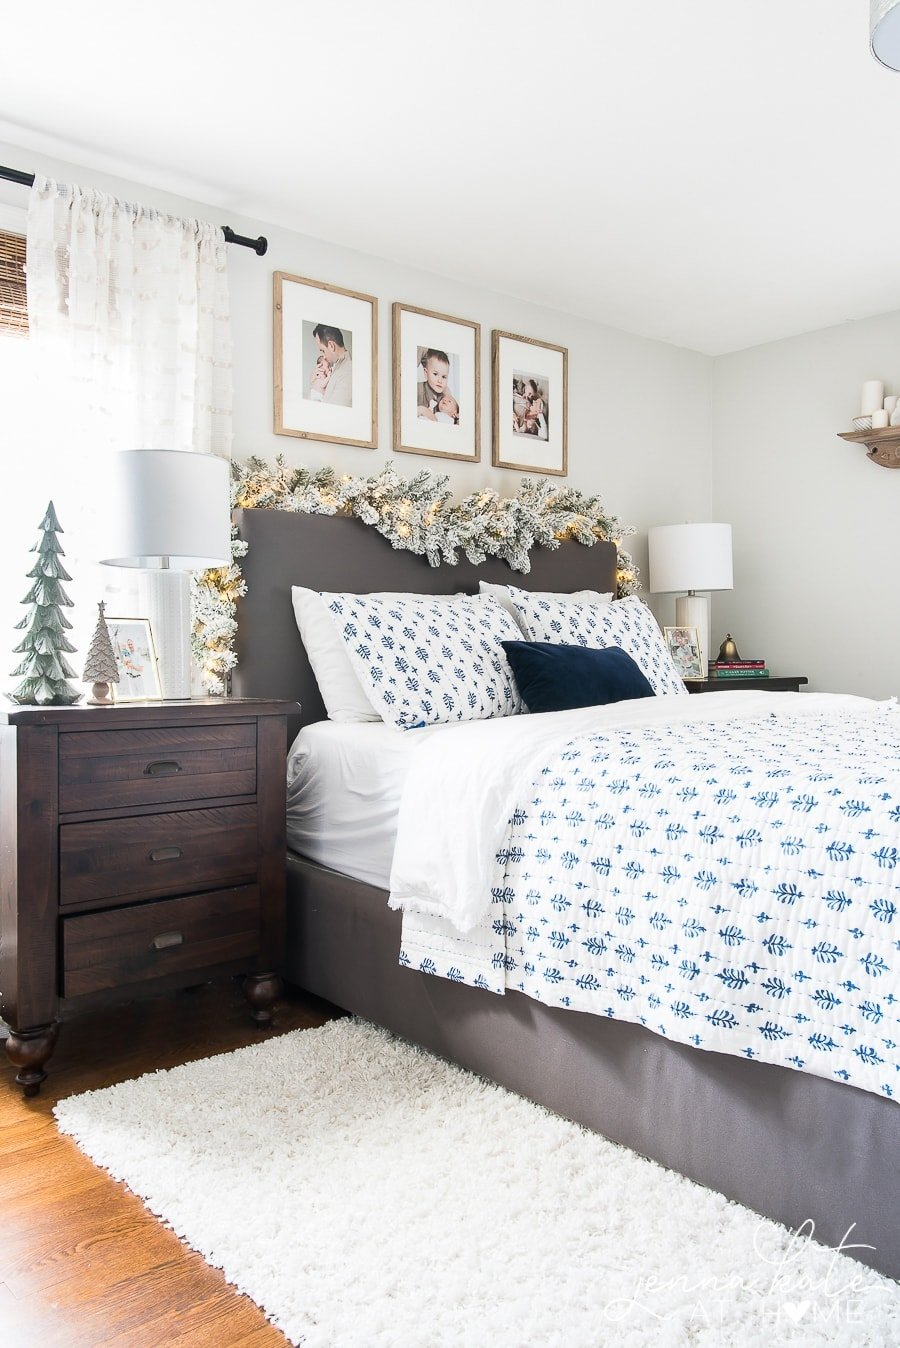 Bedroom decorated simply for Christmas